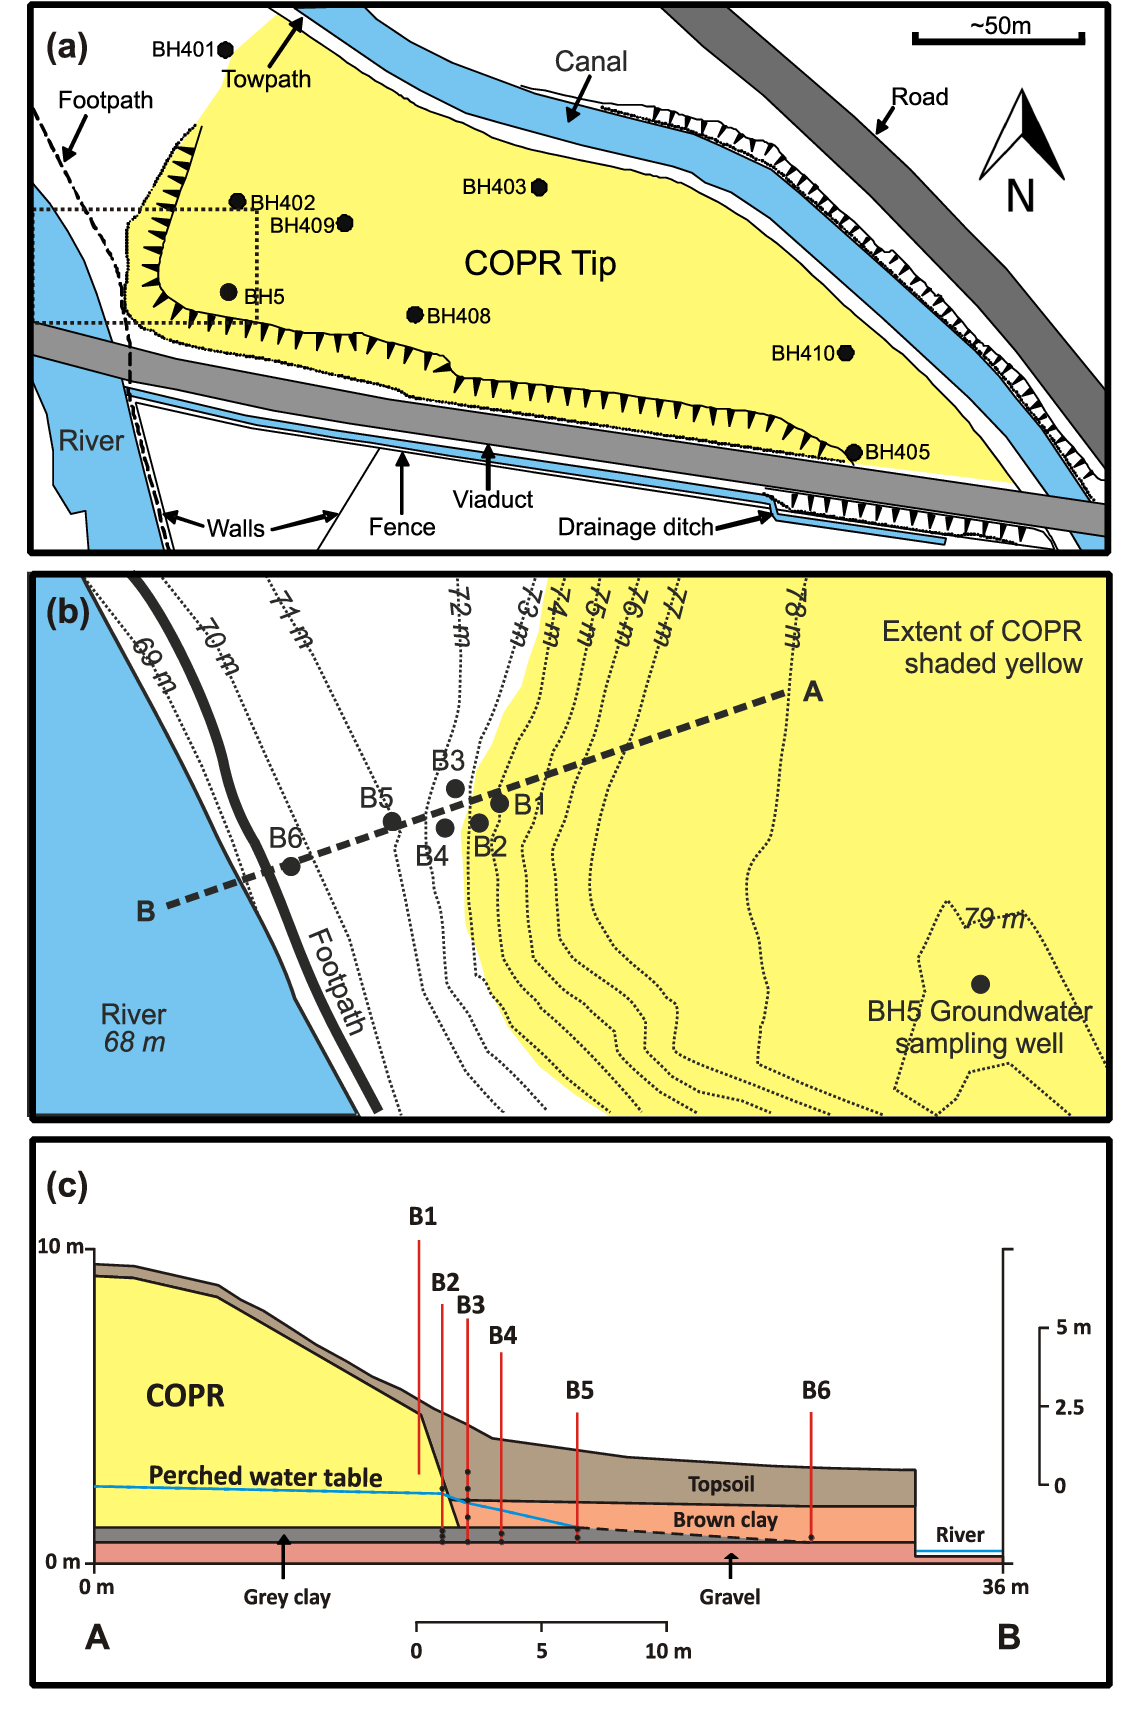 Figure 4.1 COPR site ground investigation; (a) Sketch map of the site indicating the study area and the borehole locations from commercial site investigations undertaken in 2002 and 2007, (b) the study area on the south western edge of the waste showing new borehole locations, and (c) conceptual ground model along line of pseudo-section